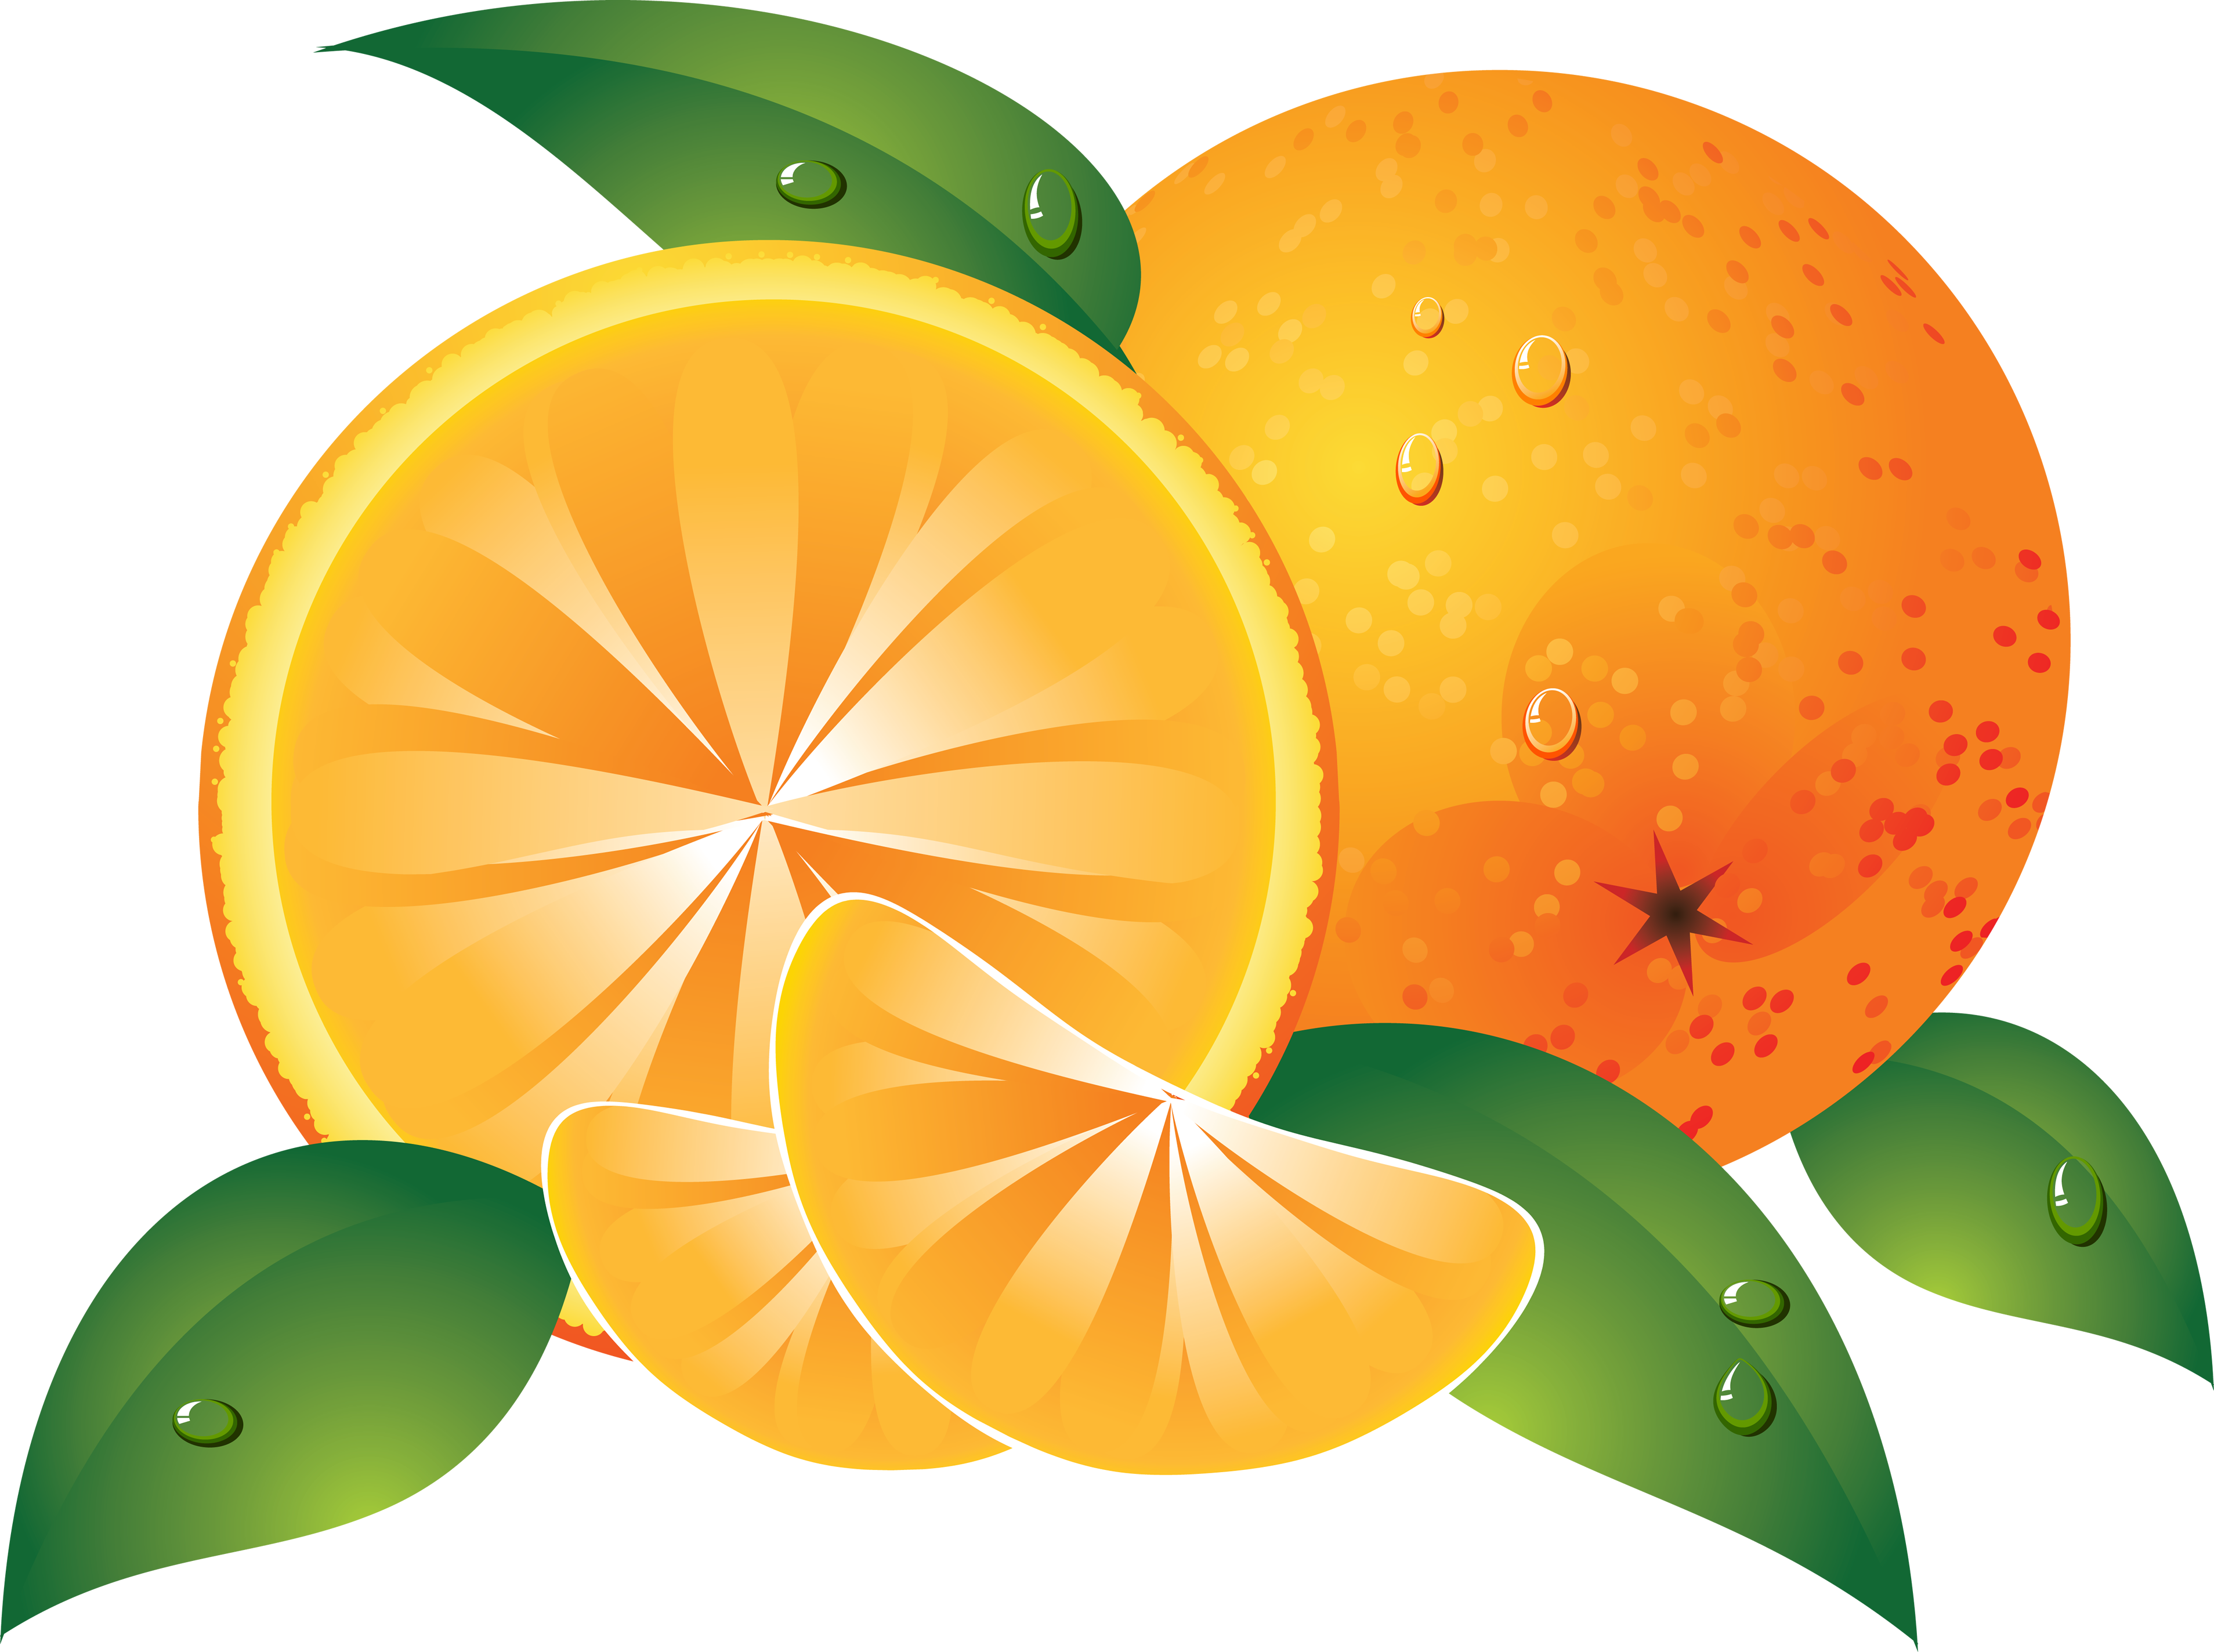 Png cliparts free download clipart freeuse Orange PNG image free download clipart freeuse